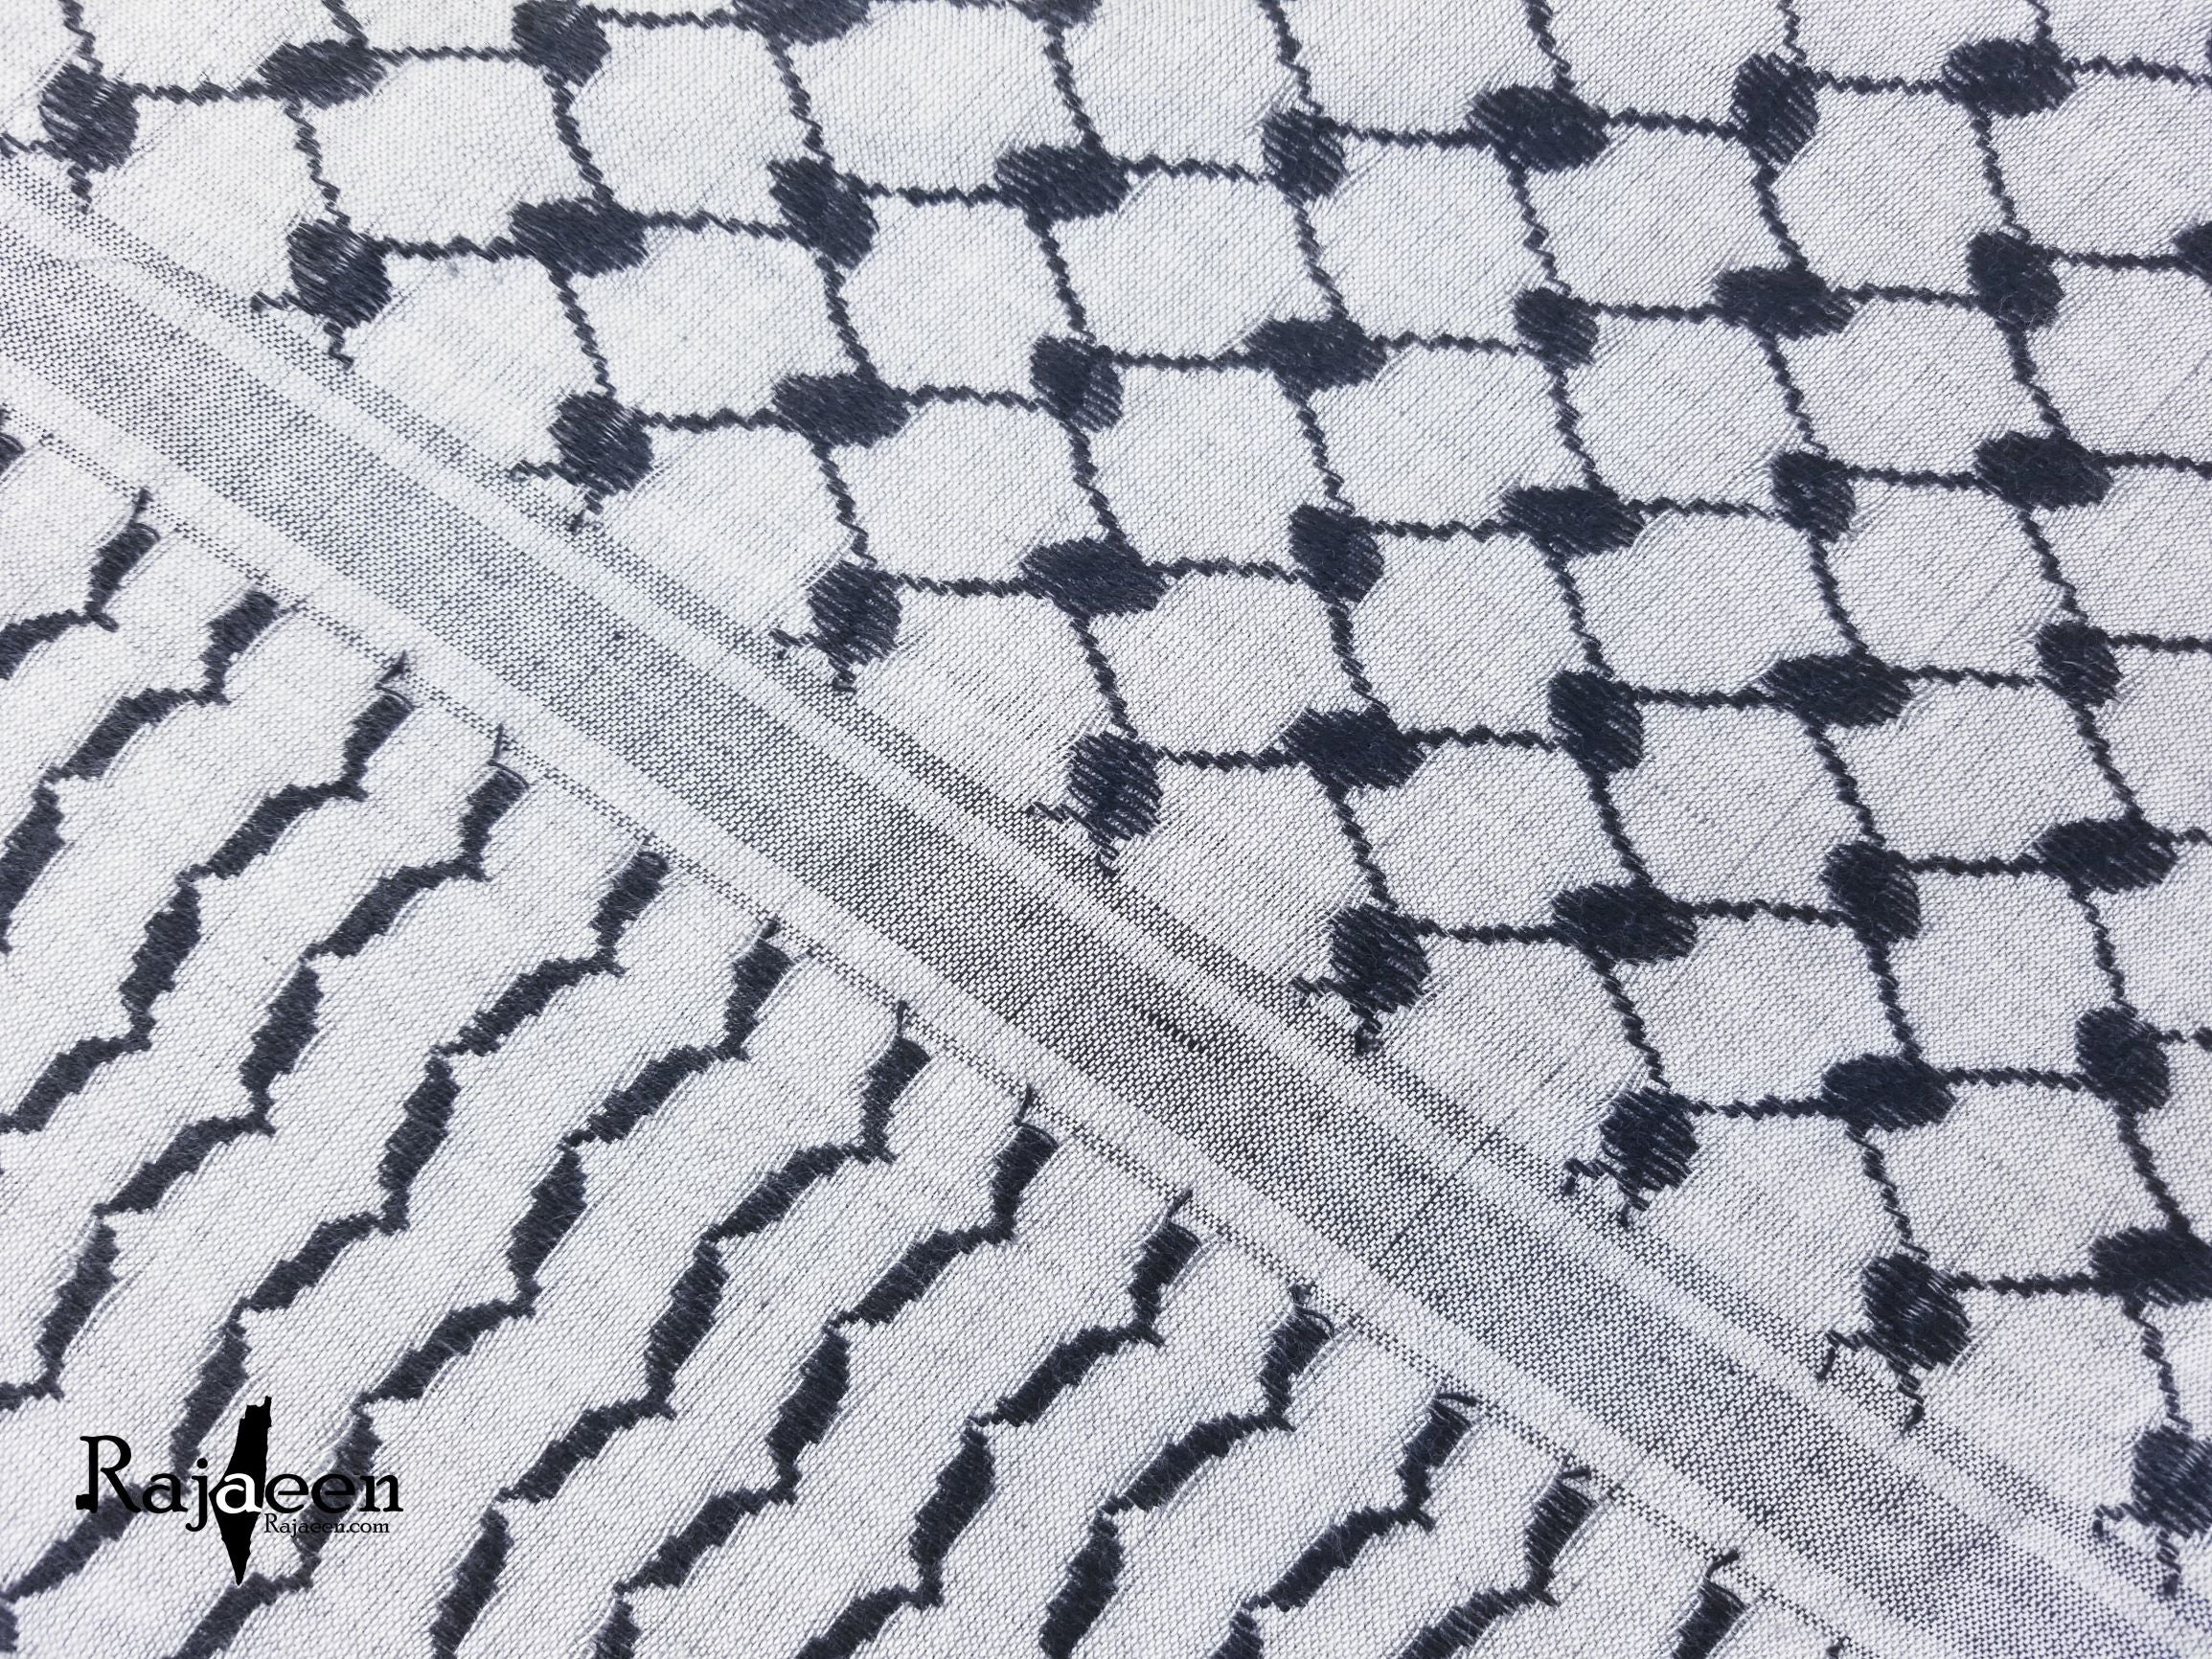 Hirbawi Keffiyeh Scarf Made in Palestine - the Black and Gray Shemagh